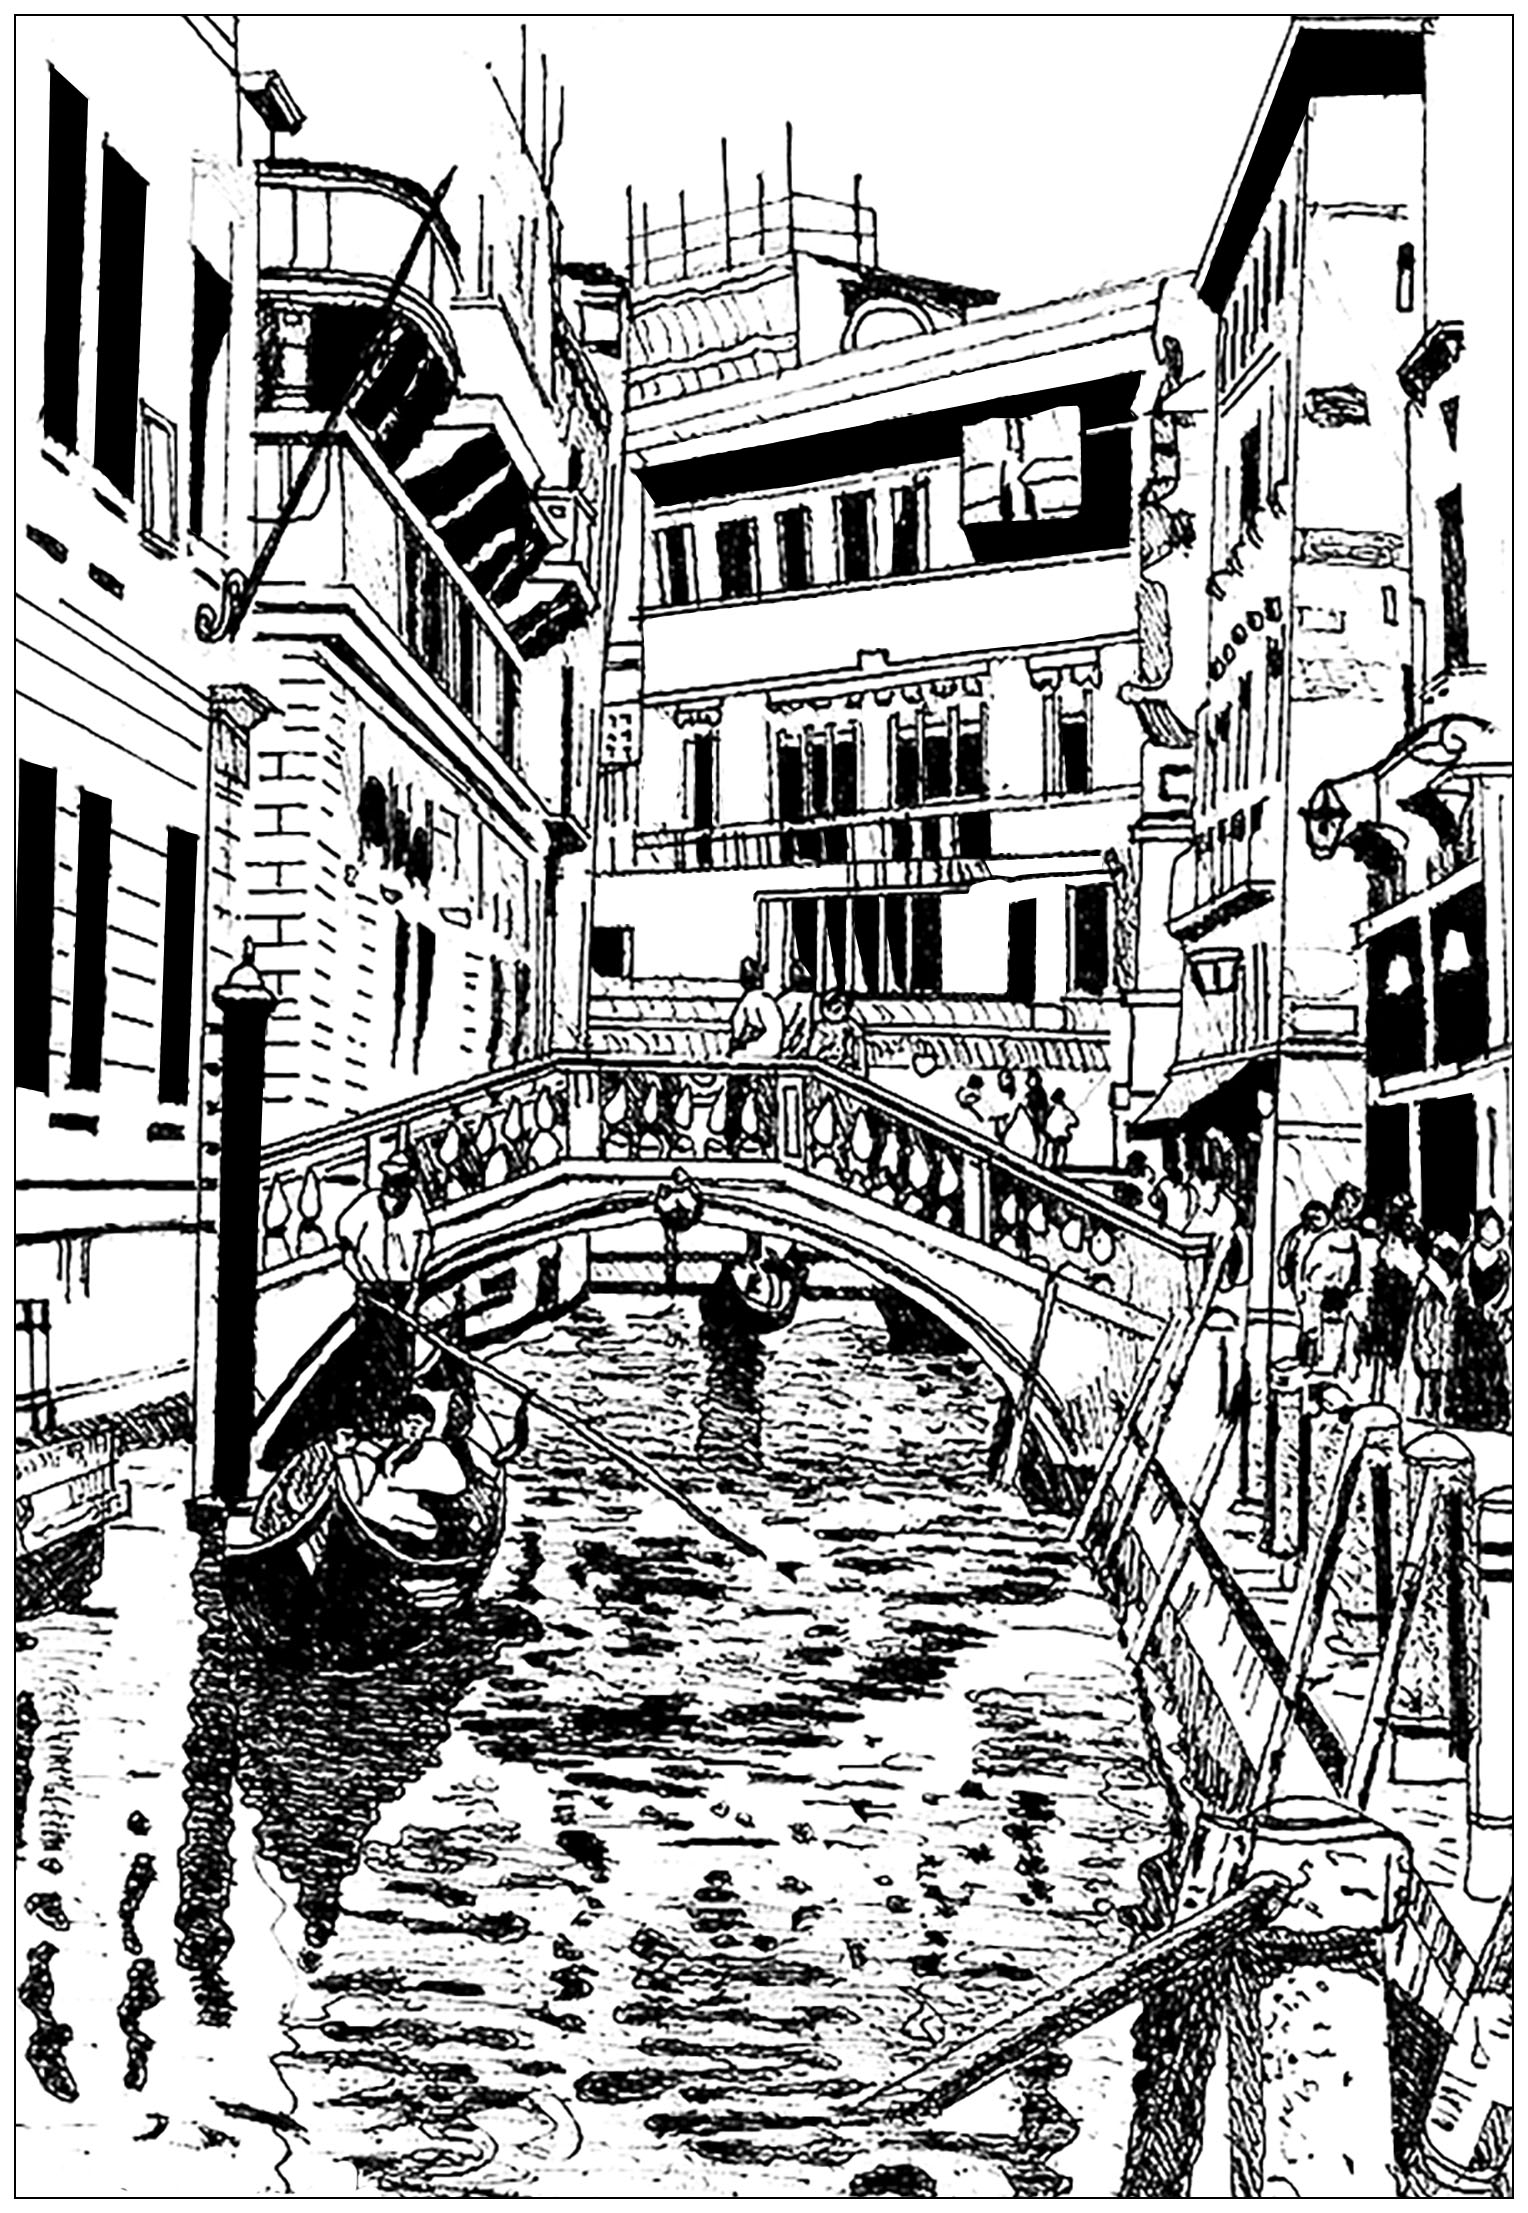 Drawing of Venice, in Italy